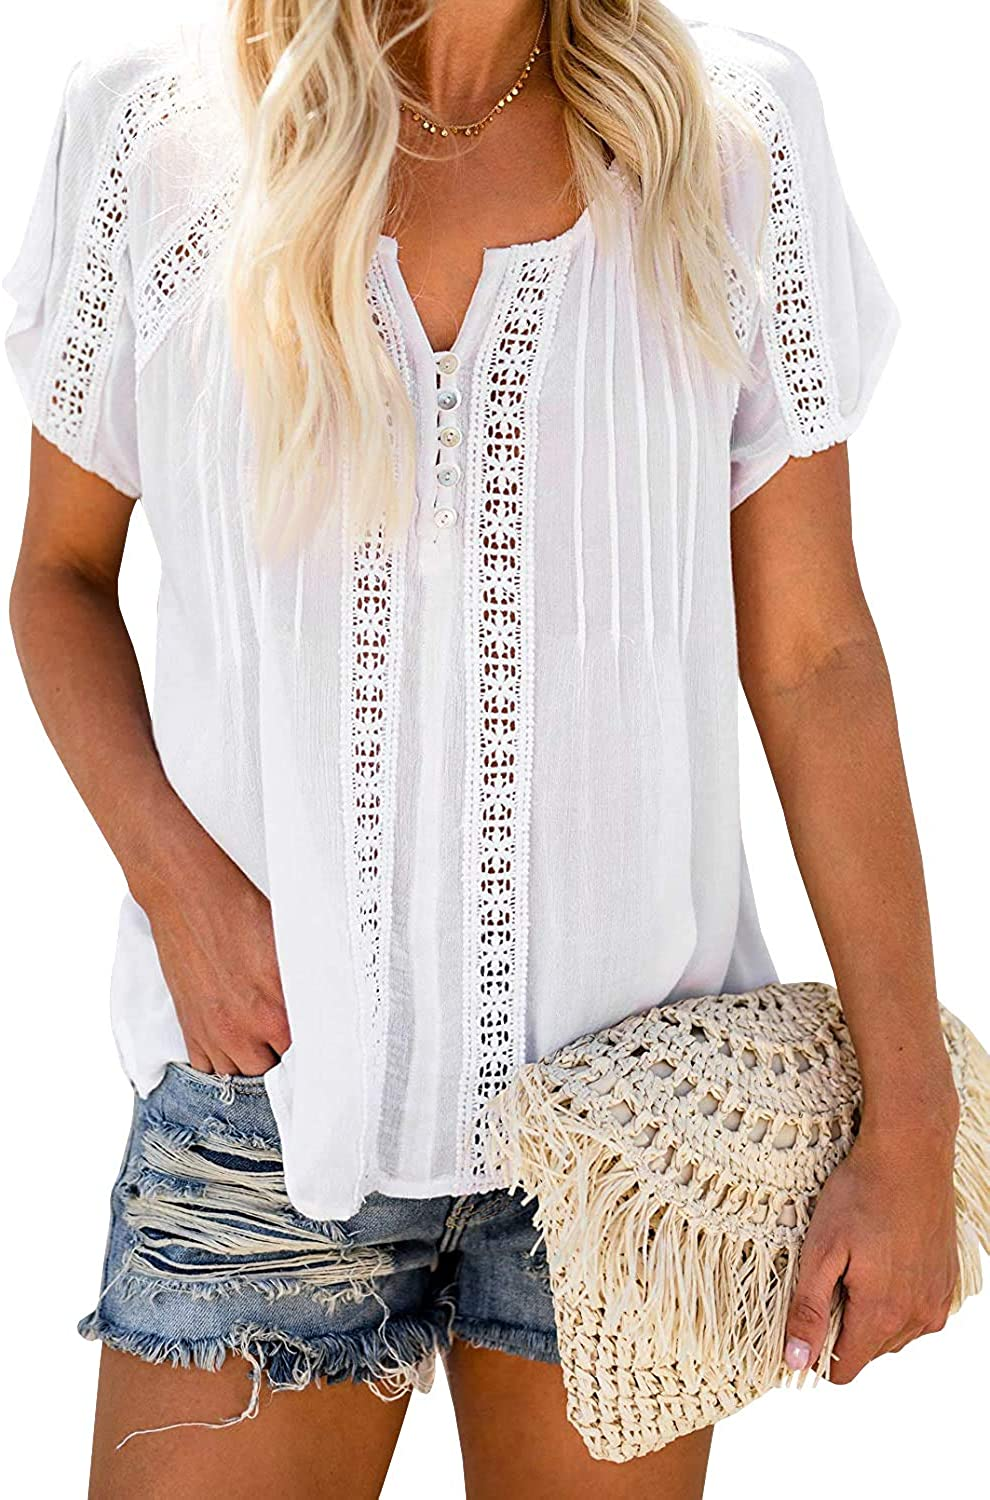 Yousify Wonens V Neck Lace Tops Casual Short Sleeve Button Down Hollow Out Blouse Shirts